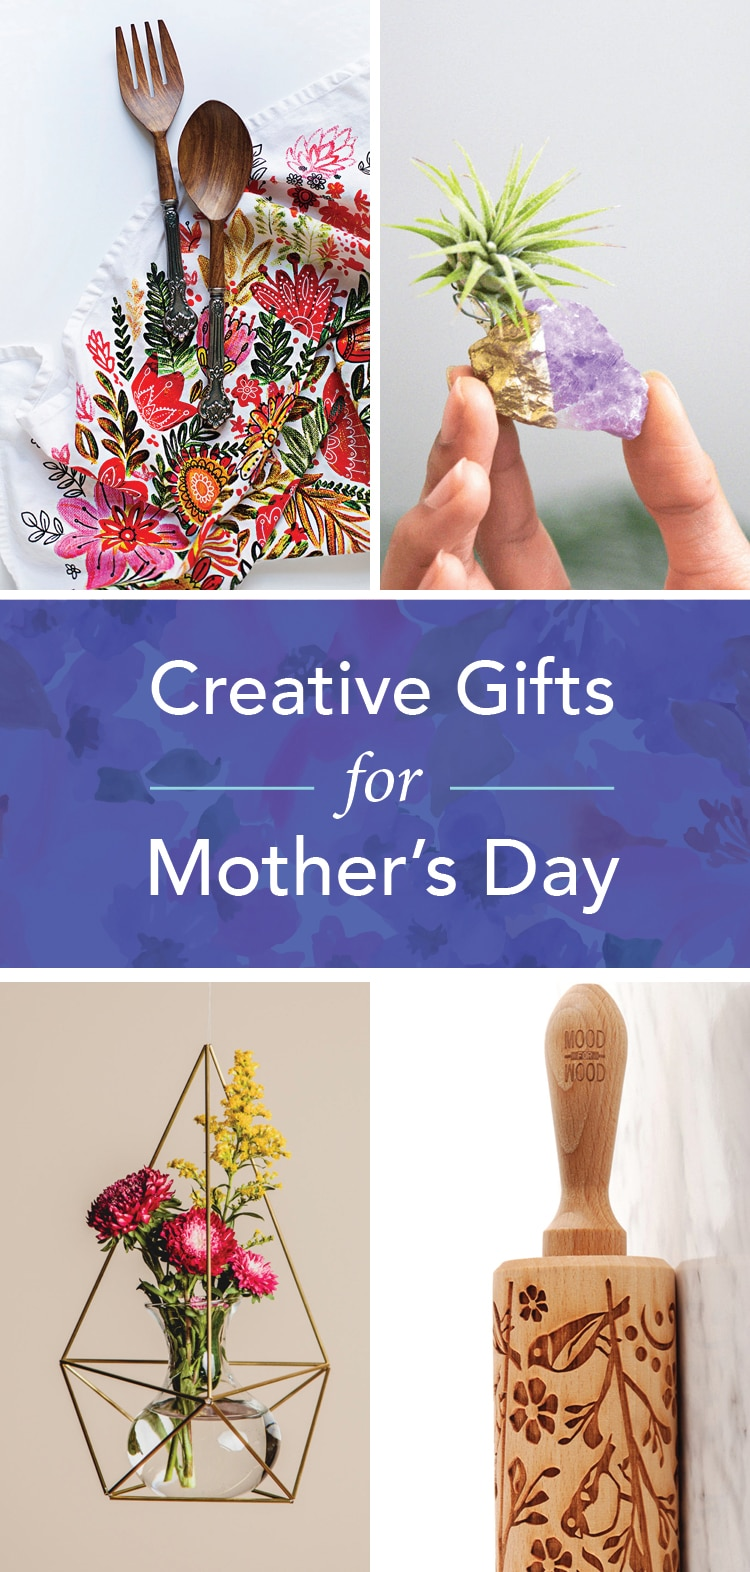 Creative Gift Ideas for Mother's Day